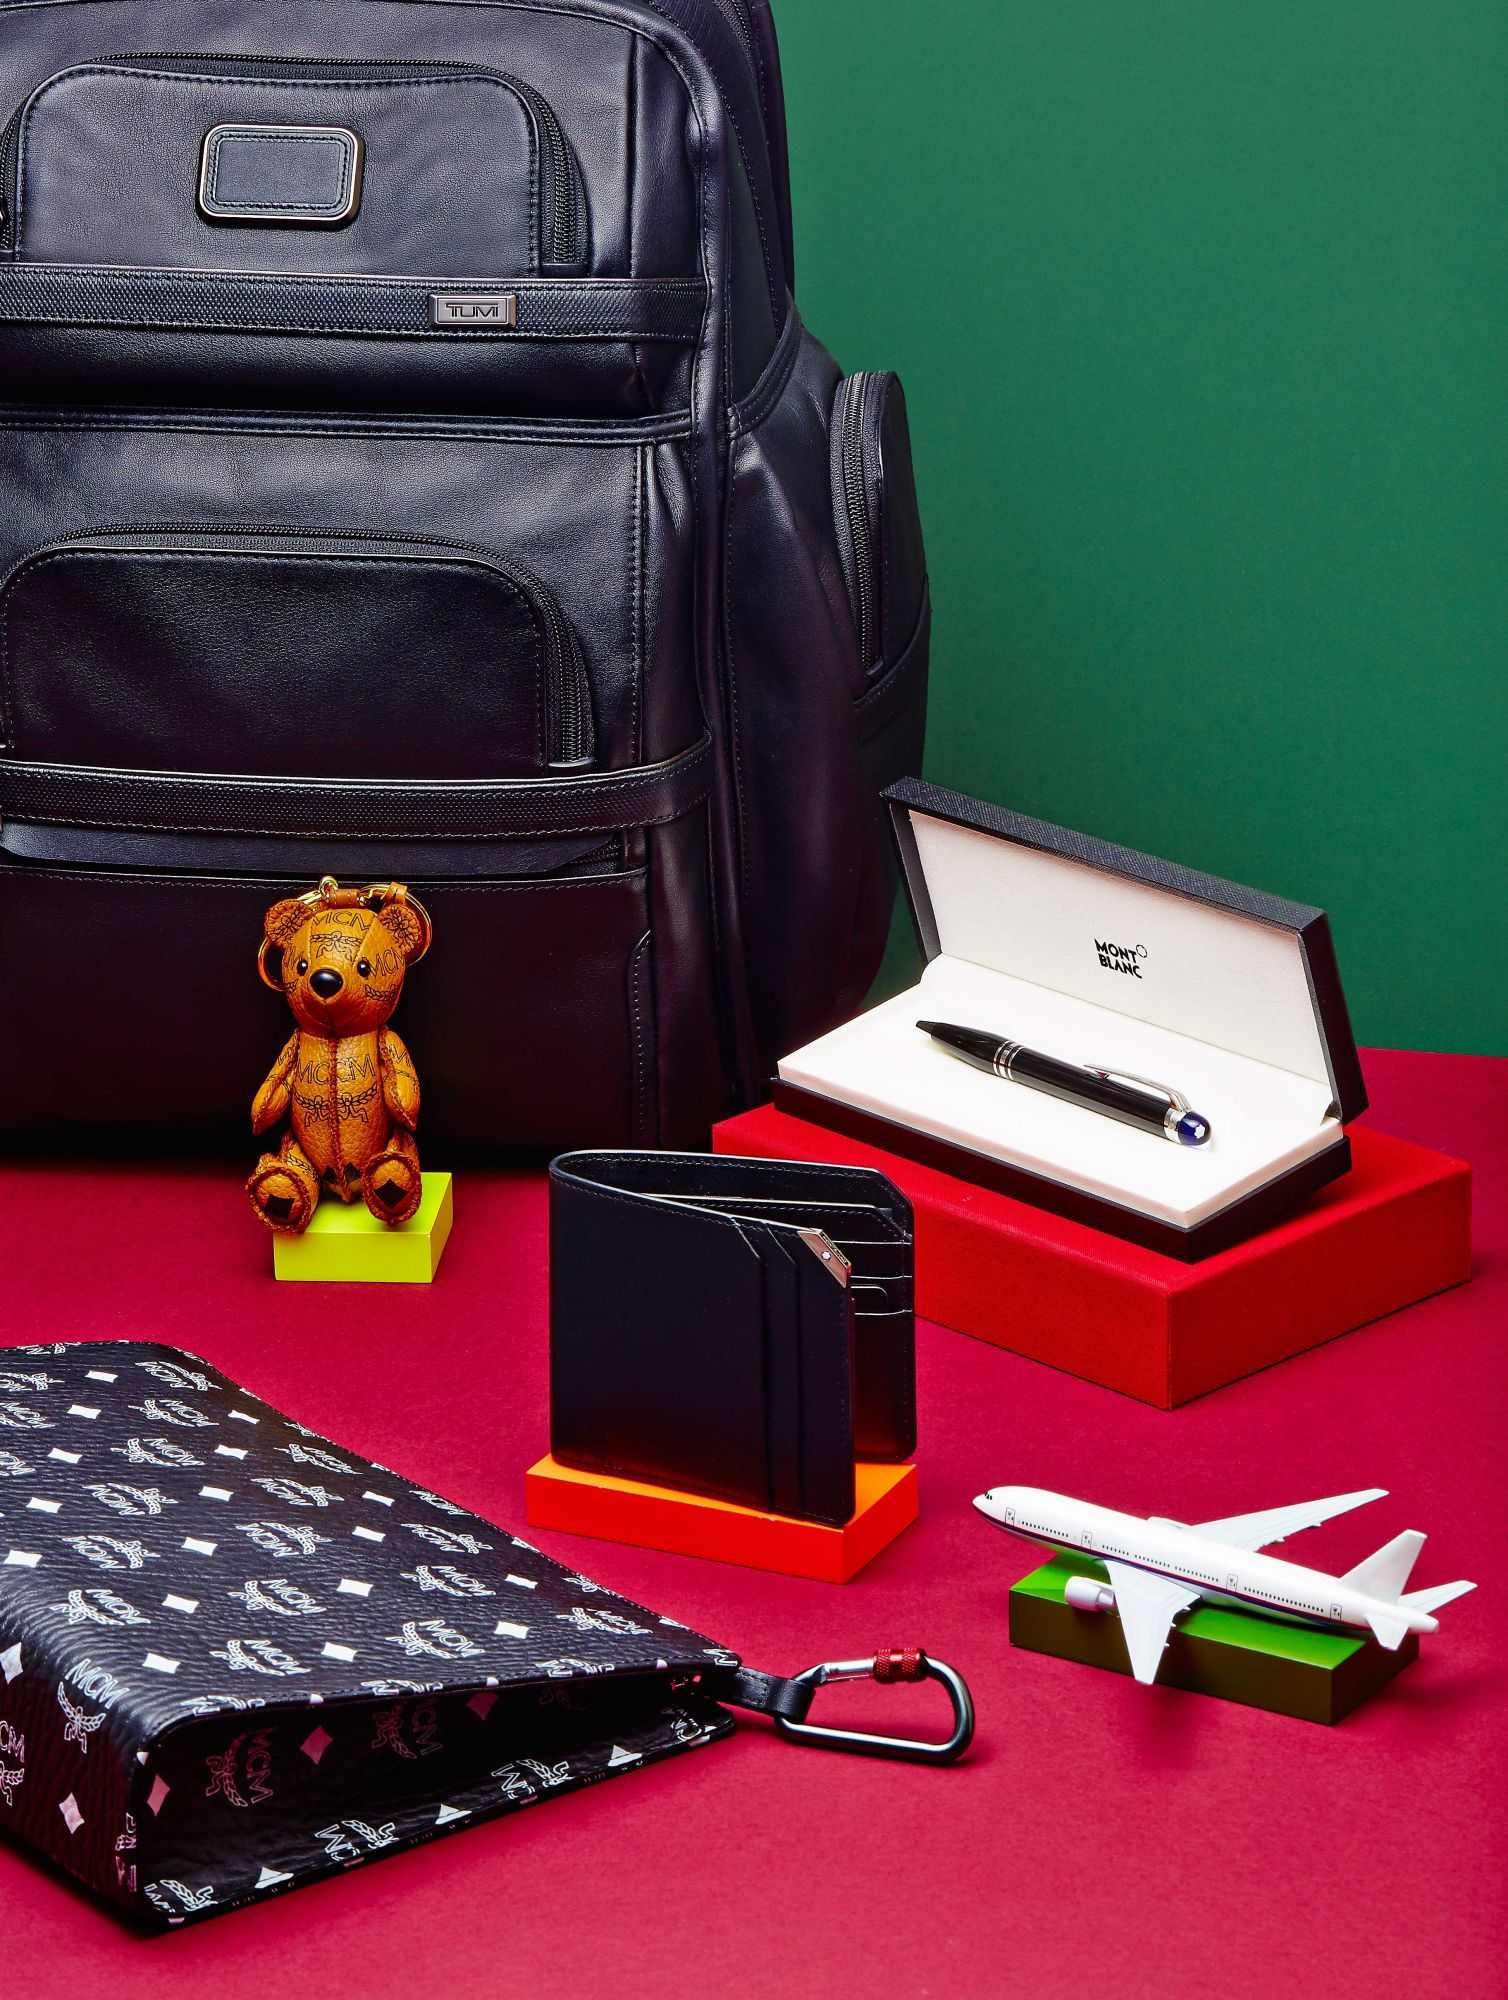 Alpha 3 Business Class Brief Pack, at Tumi; Teddy bear and clutch, at MCM;  Meisterstück Urban wallet and pen, at Montblanc